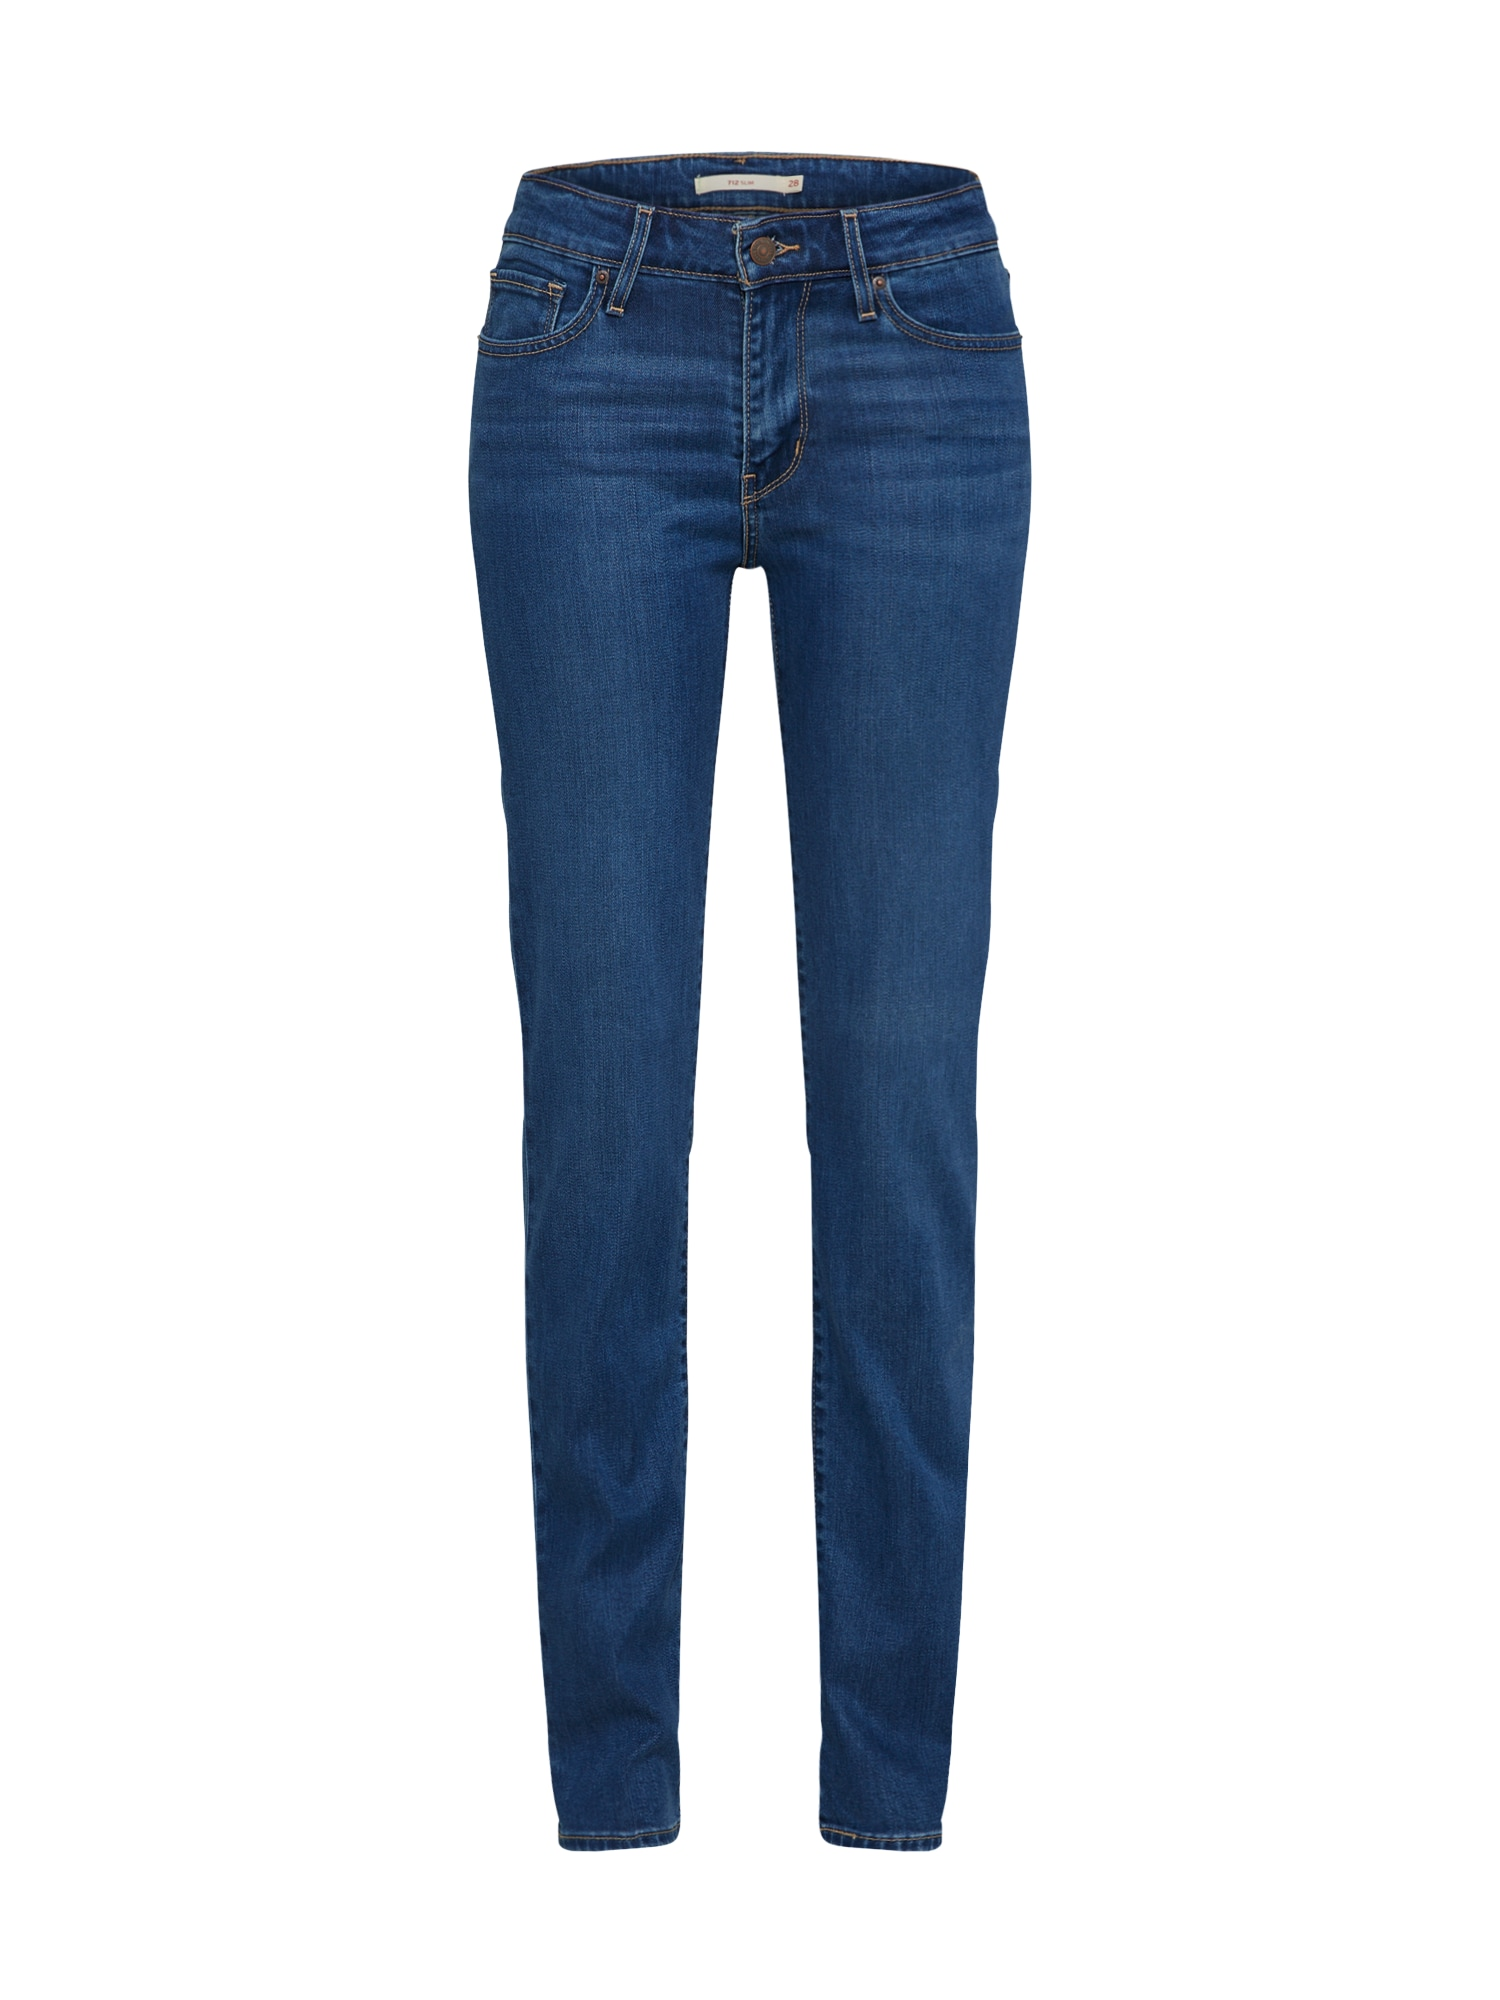 LEVI'S Dames Jeans 712 donkerblauw